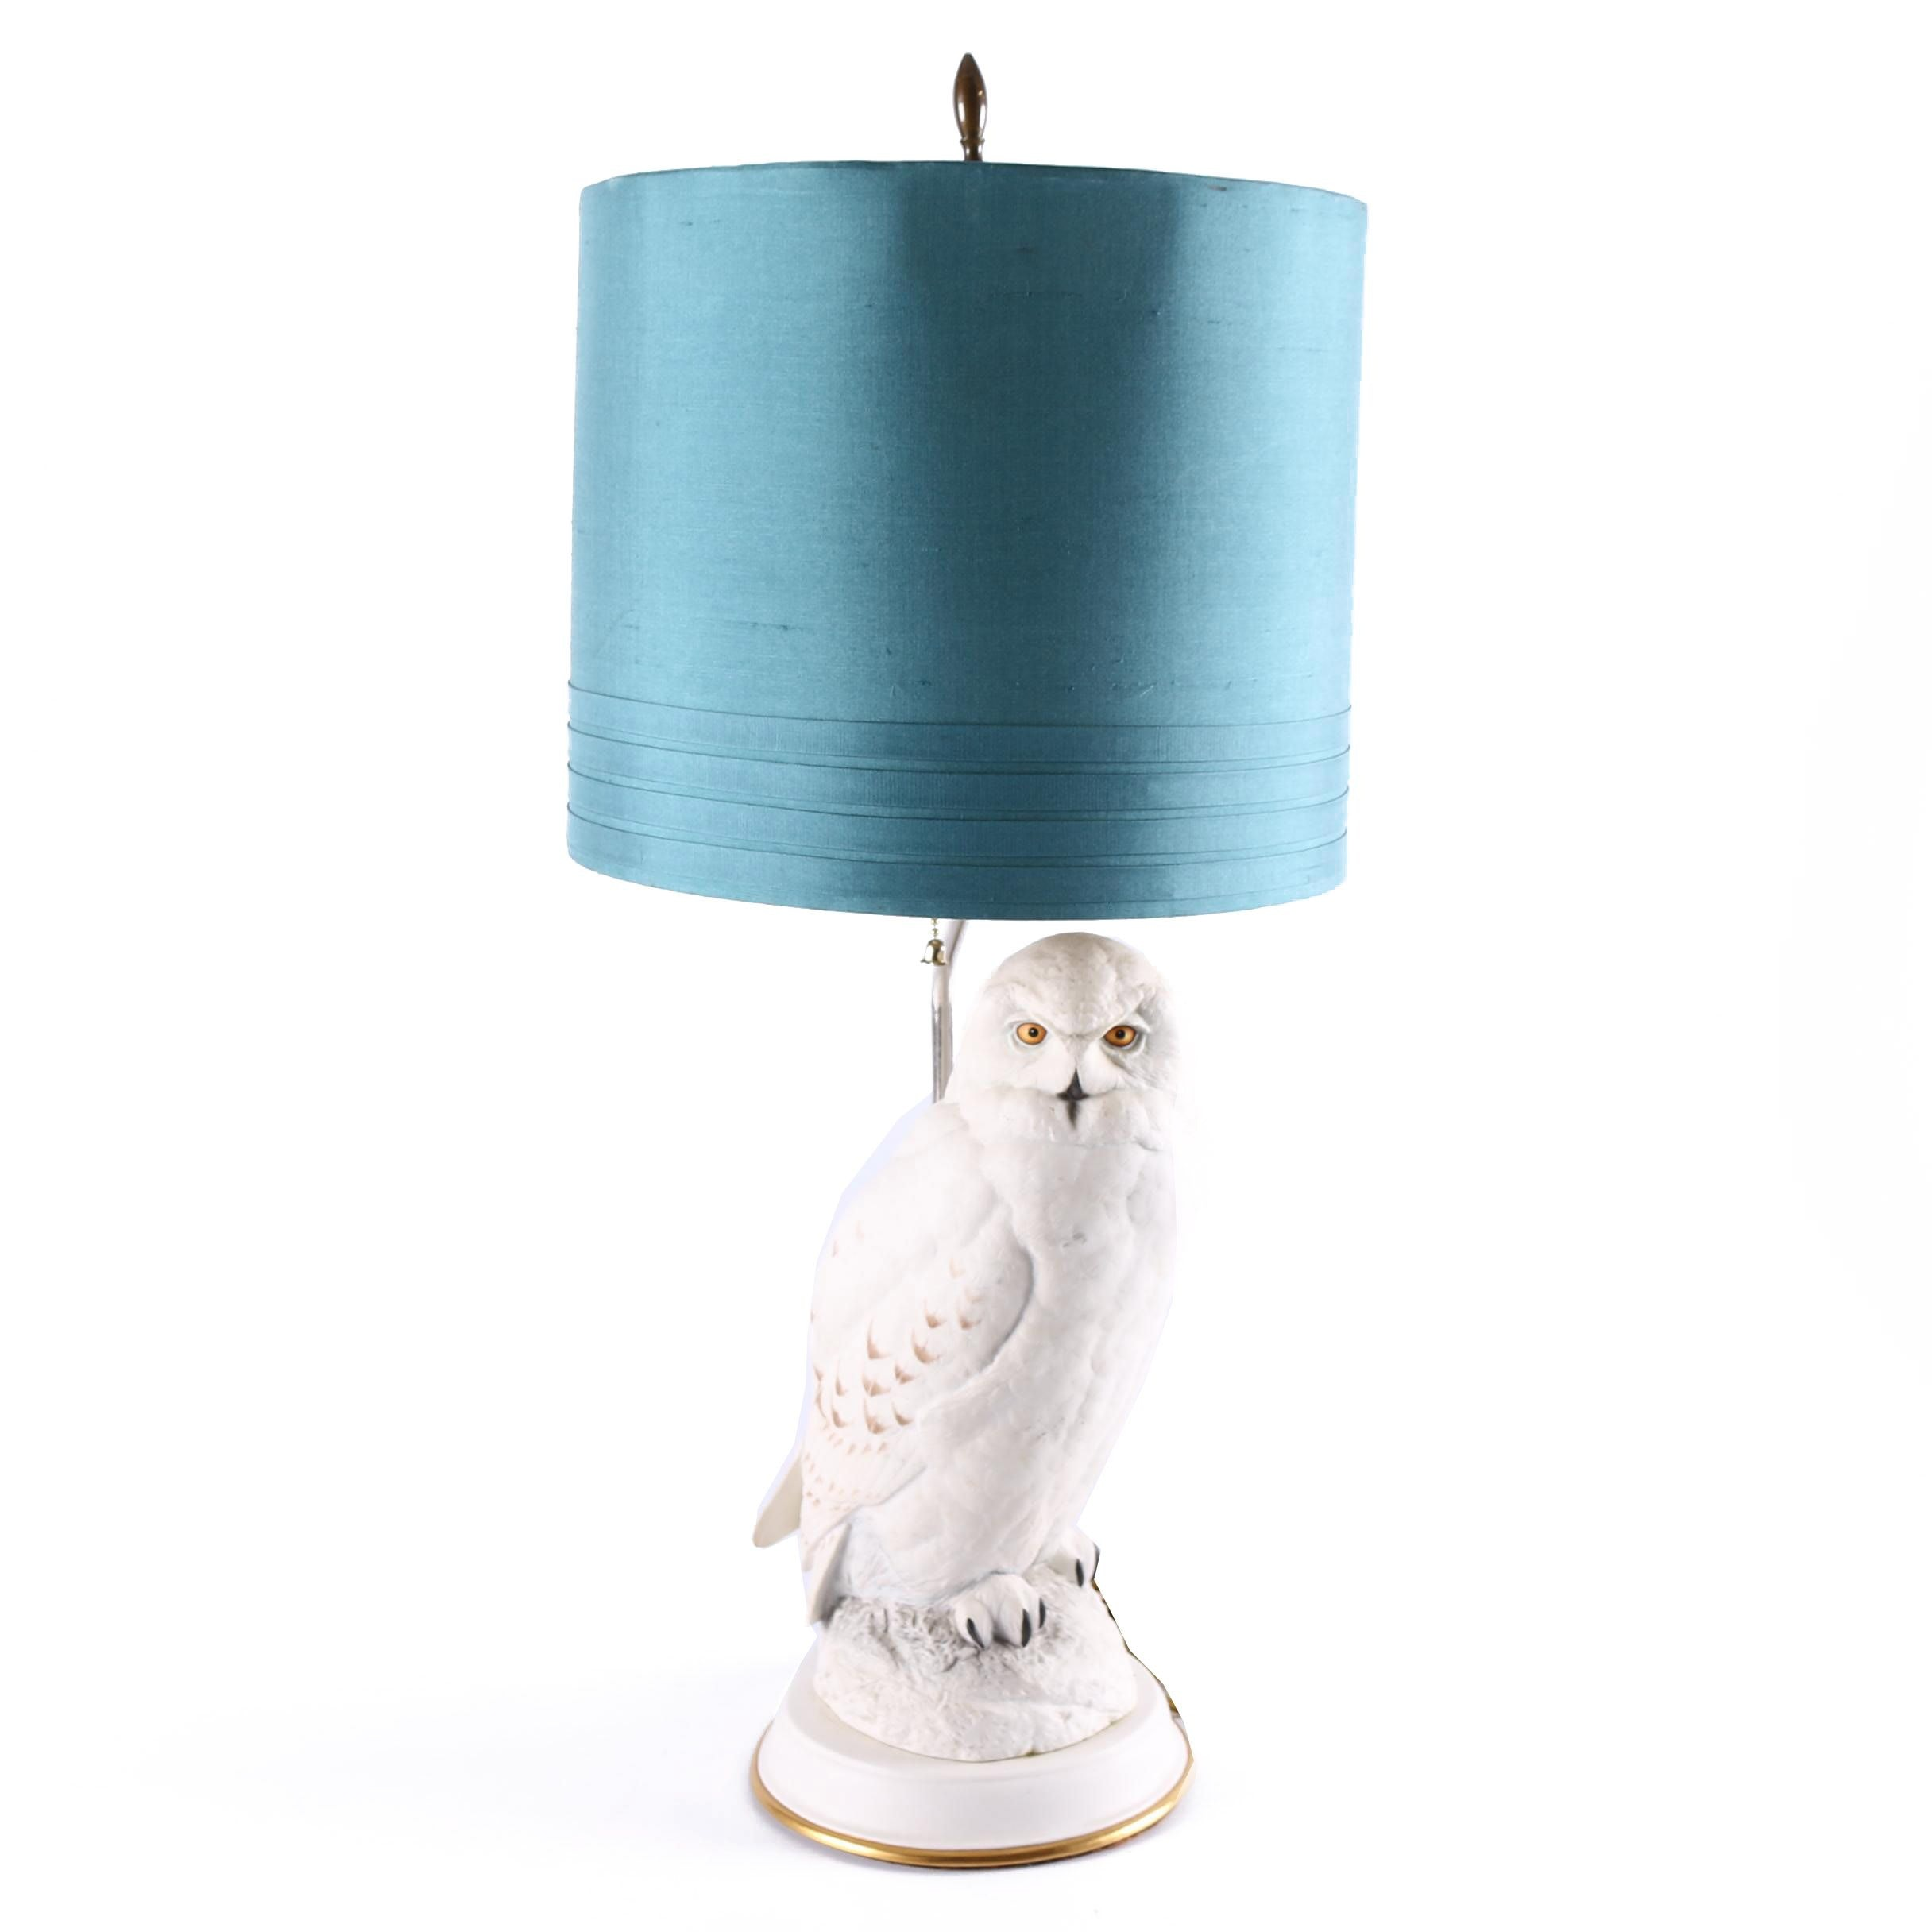 "Franklin Mint ""The Snowy Owl"" Porcelain Figural Table Lamp by Raymond Watson"